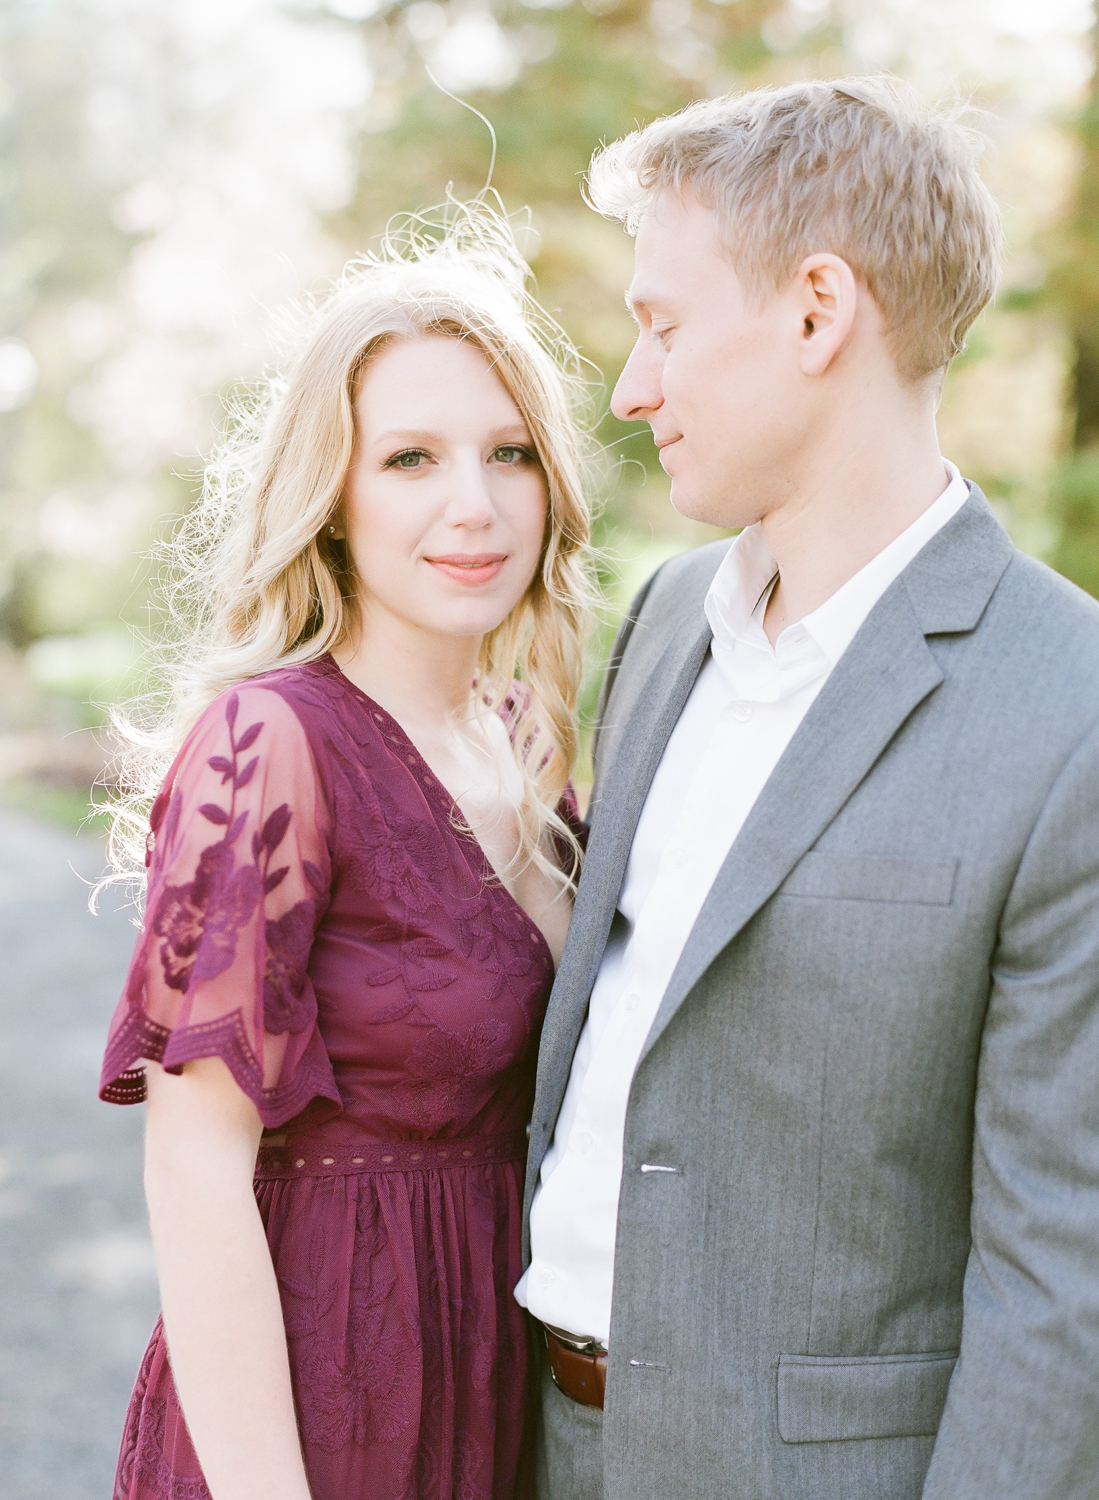 Jacqueline Anne Photography - Amanda and Brent-94.jpg